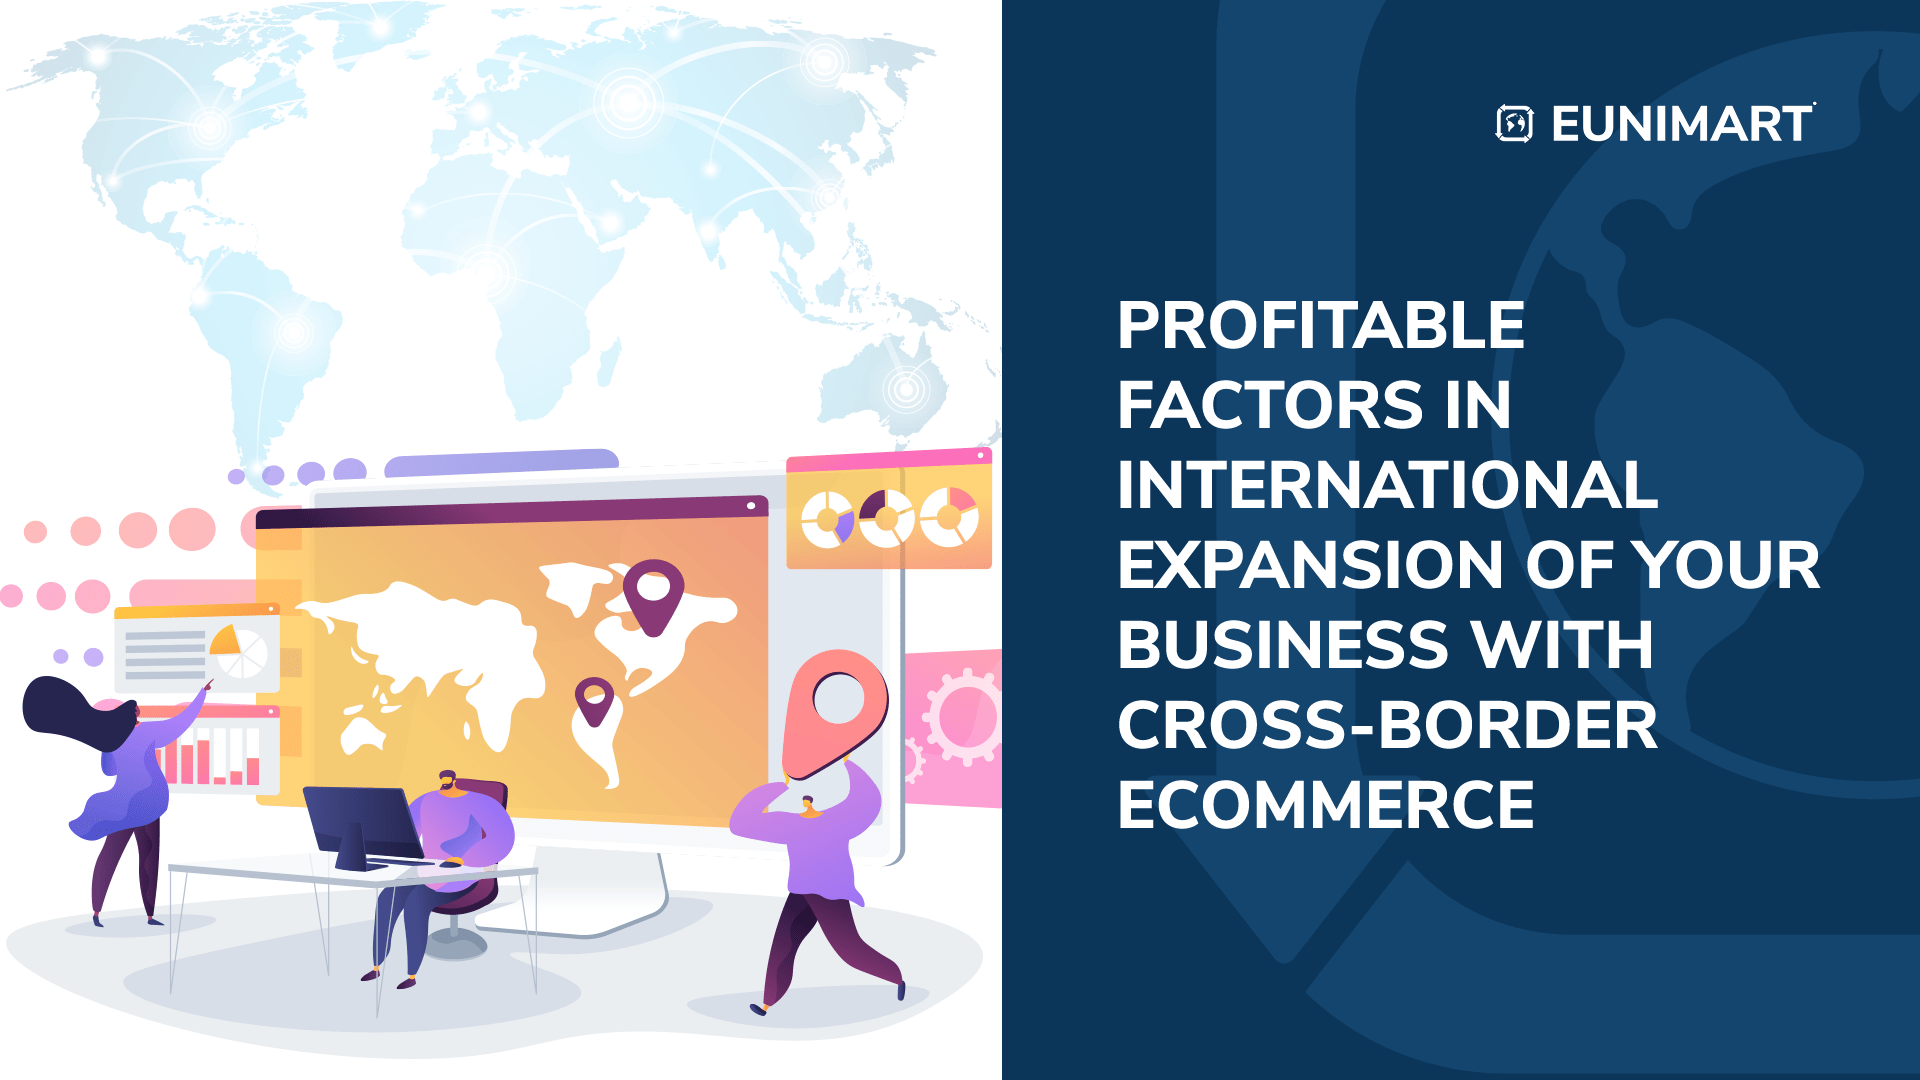 Profitable Factors in International Expansion of your Business with Cross-border Ecommerce